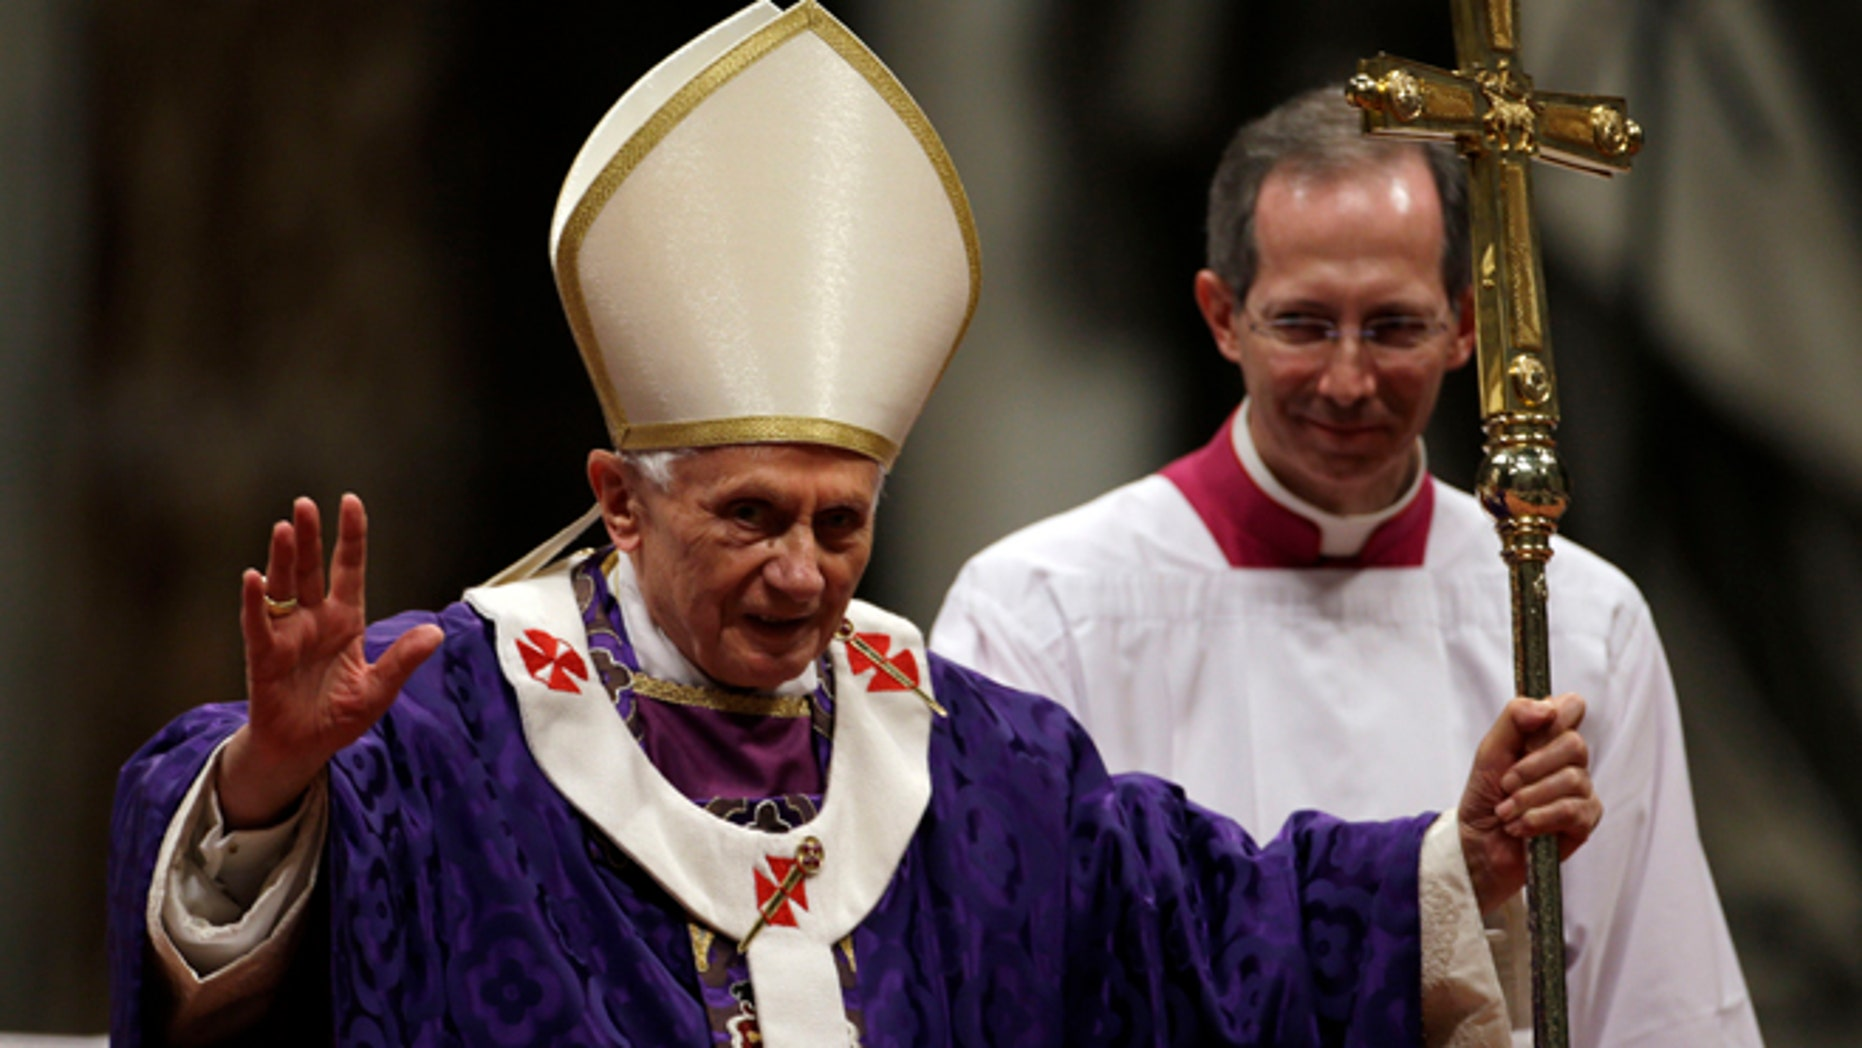 Feb. 13, 2013: Pope Benedict XVI greets the faithful at the end of the Ash Wednesday mass in St. Peter's Basilica at the Vatican.